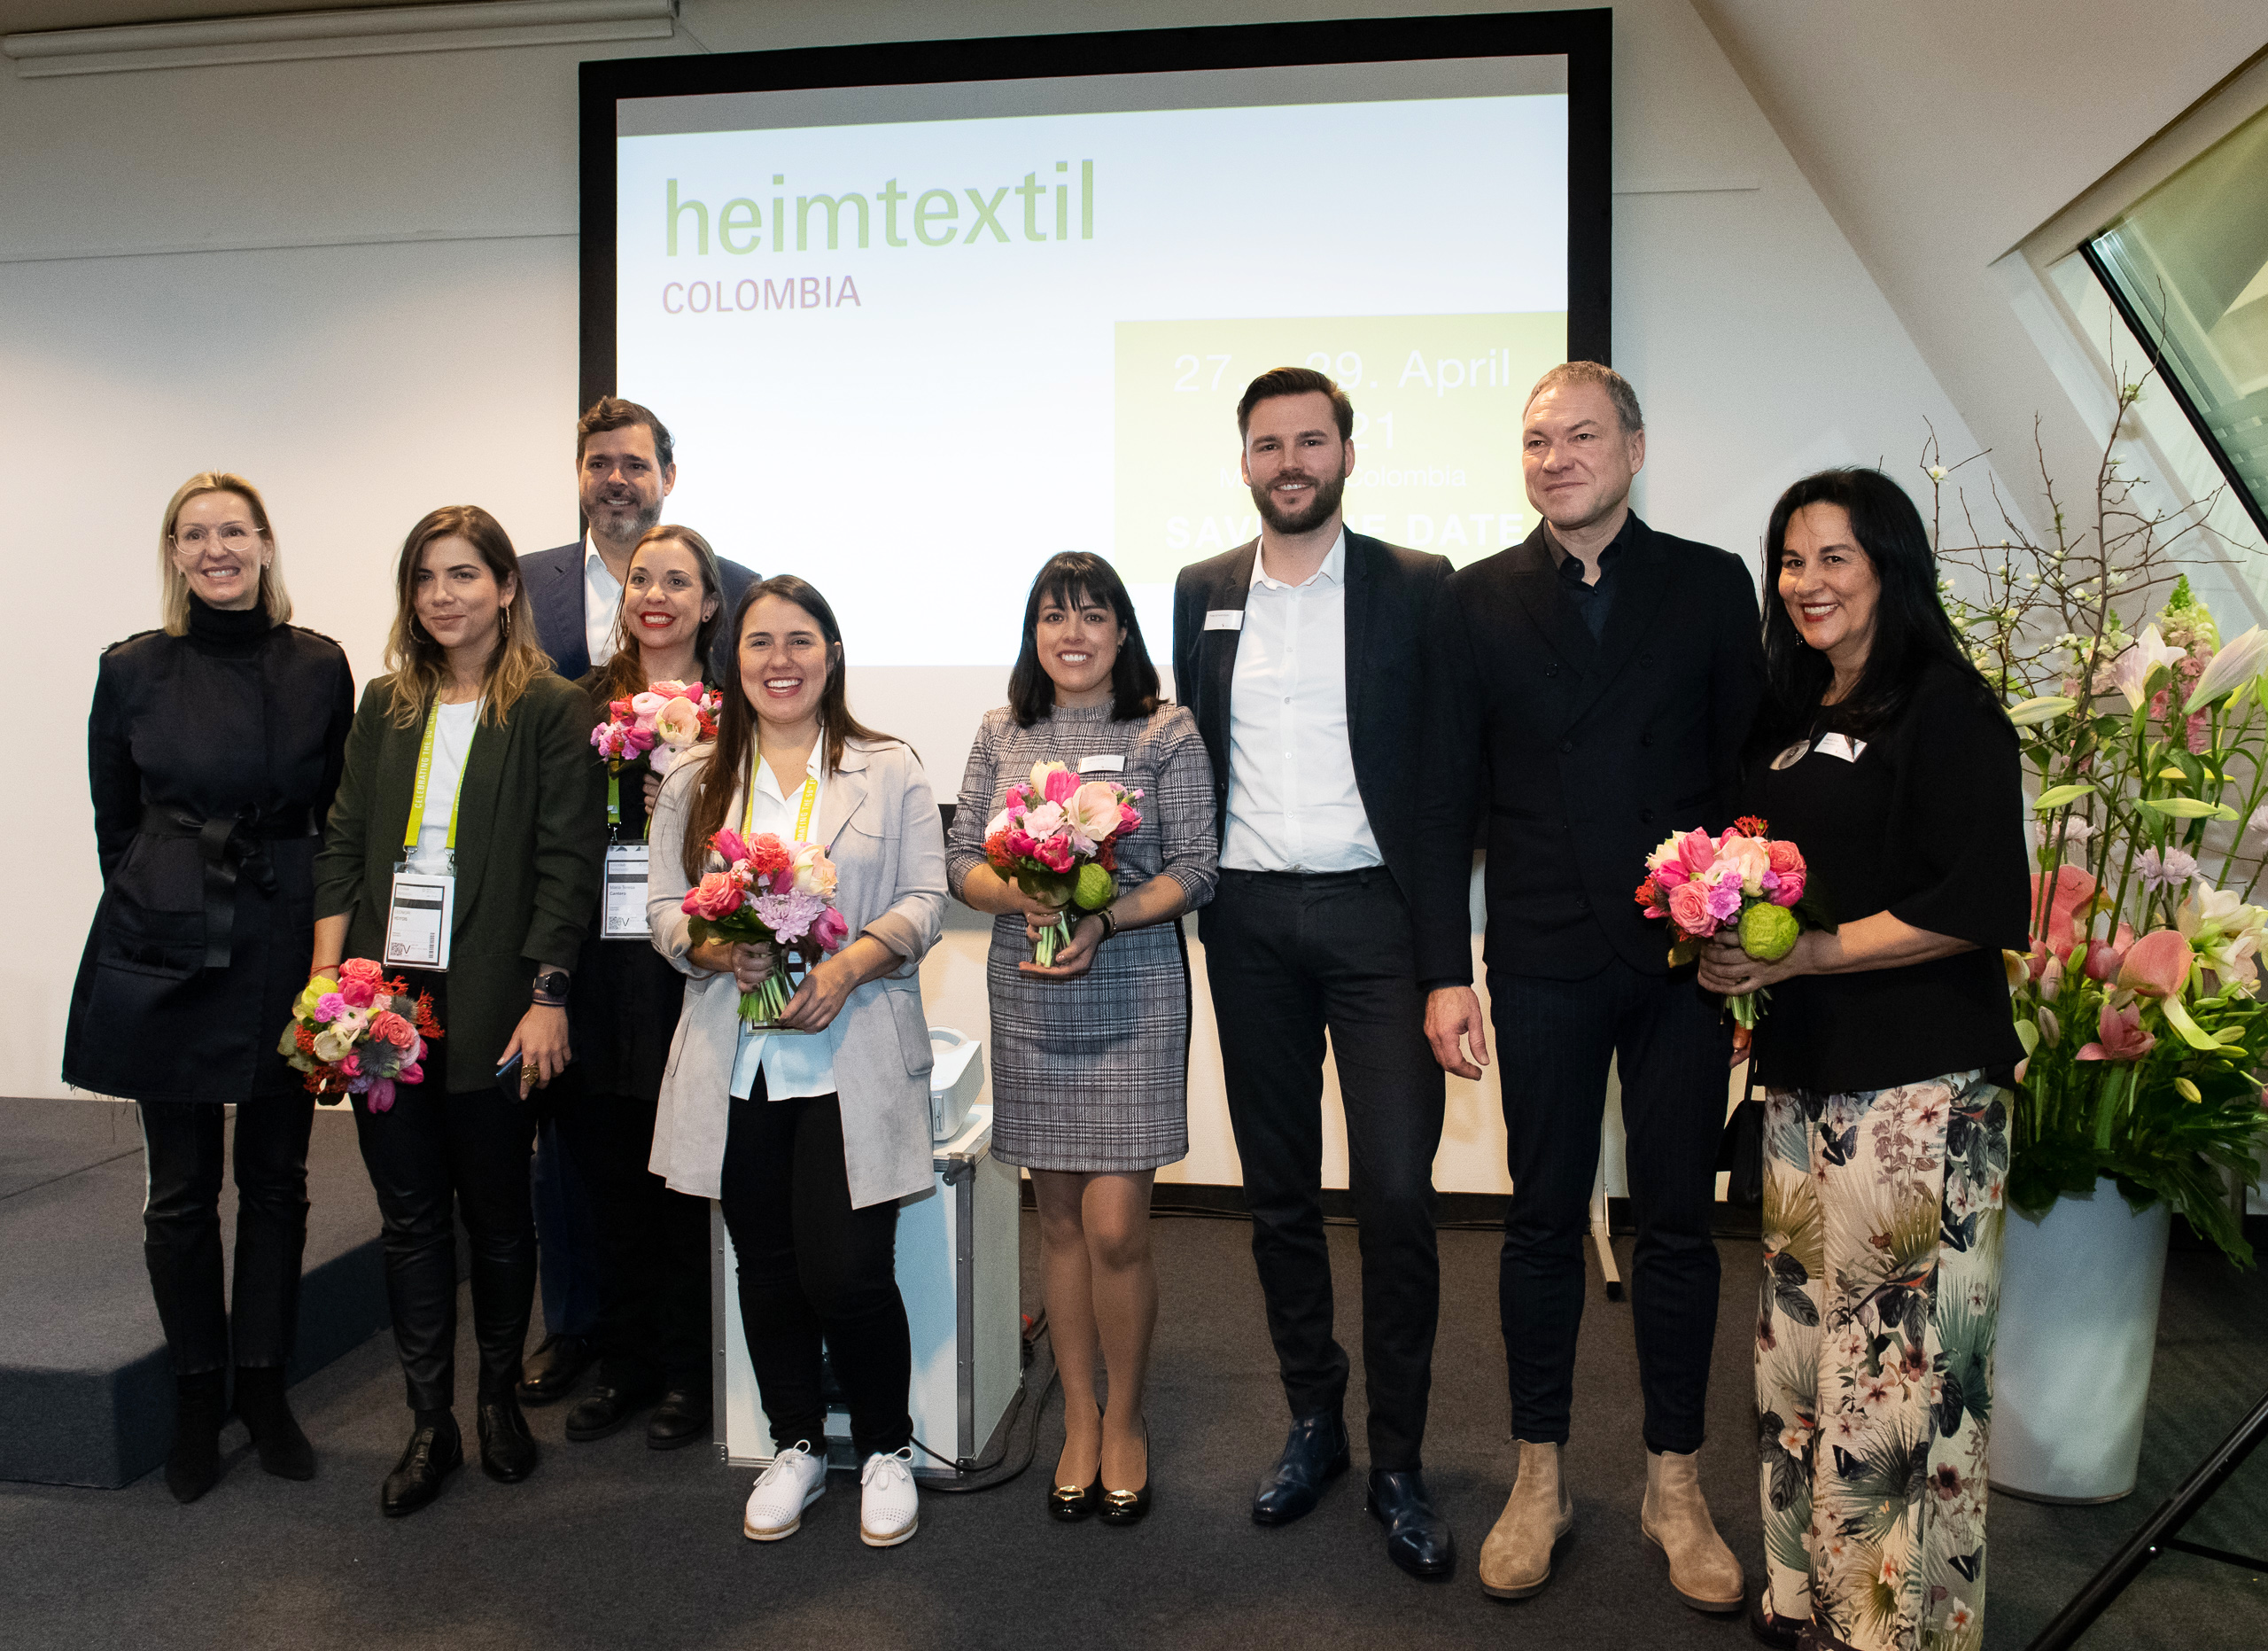 Heimtextil 2020, press conference and signing Heimtextil Colombia